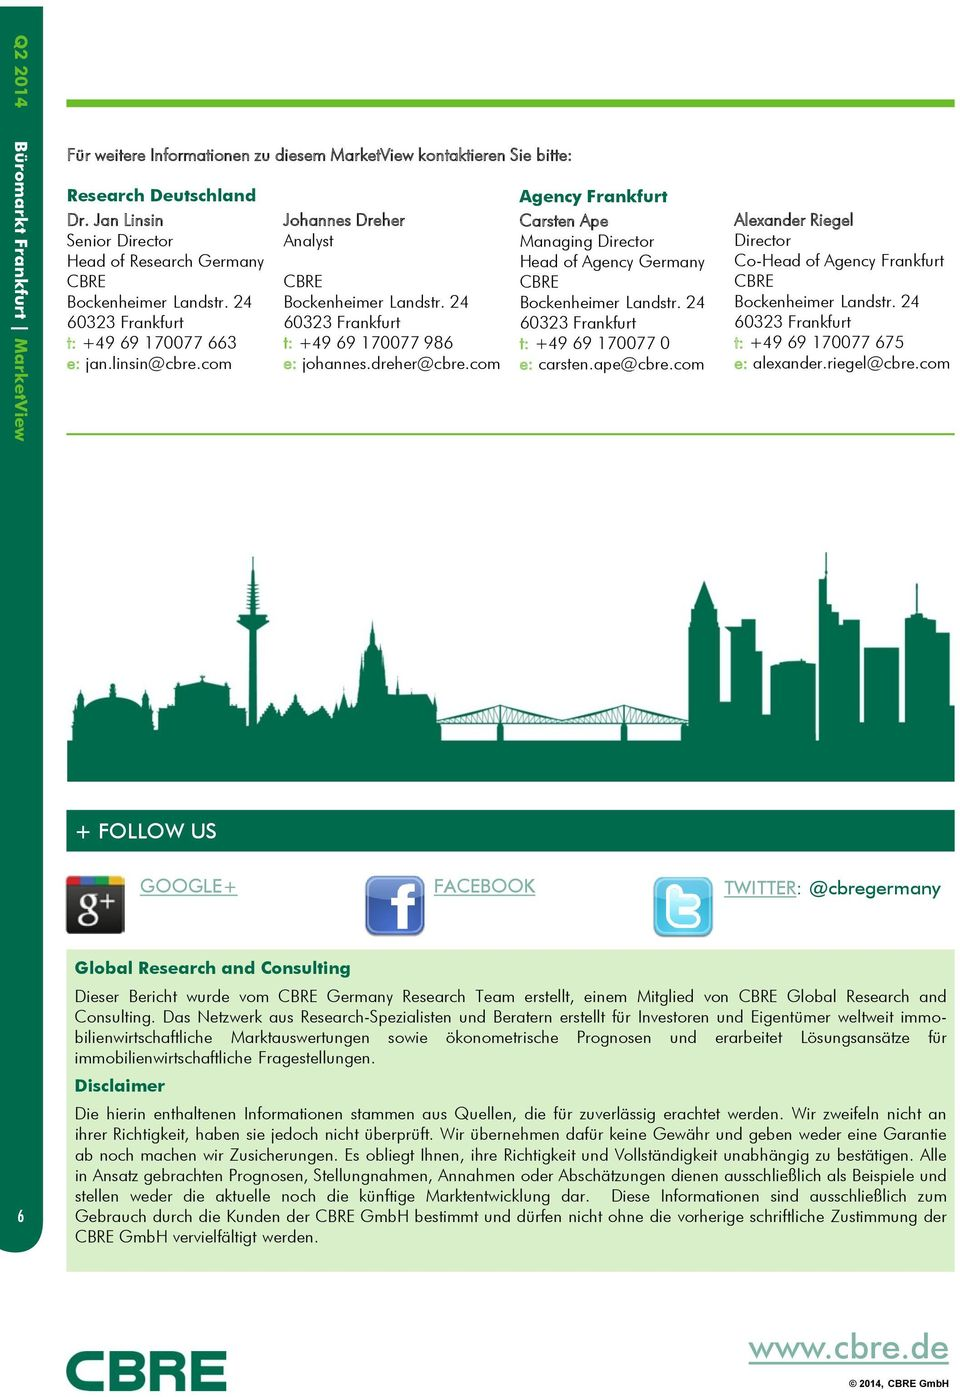 com Agency Frankfurt Carsten Ape Managing Director Head of Agency Germany 6323 Frankfurt t: +49 69 1777 e: carsten.ape@cbre.